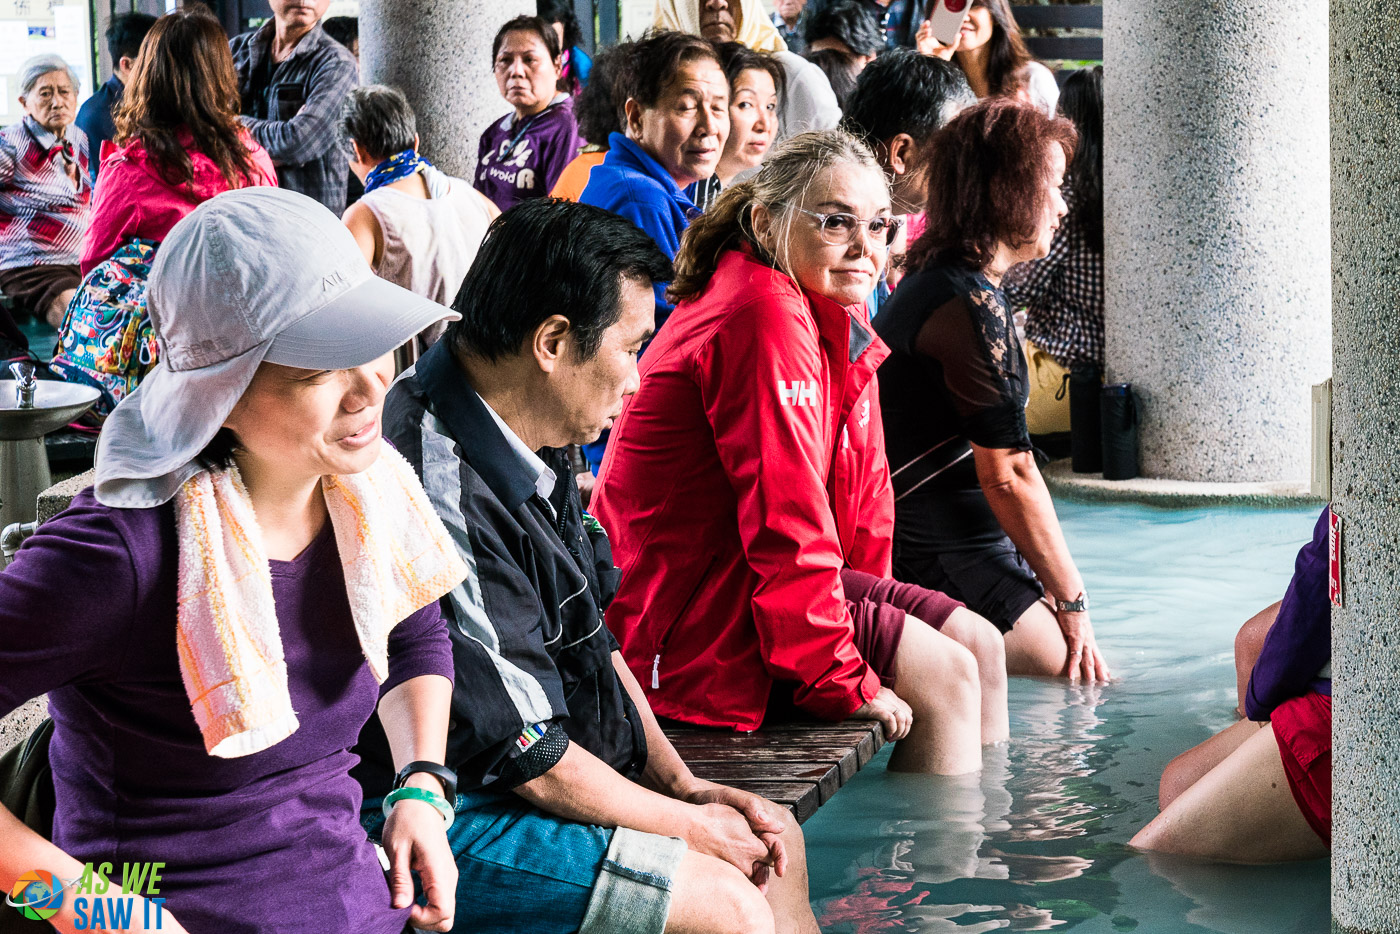 Making a mental note about Beitou Hot Springs